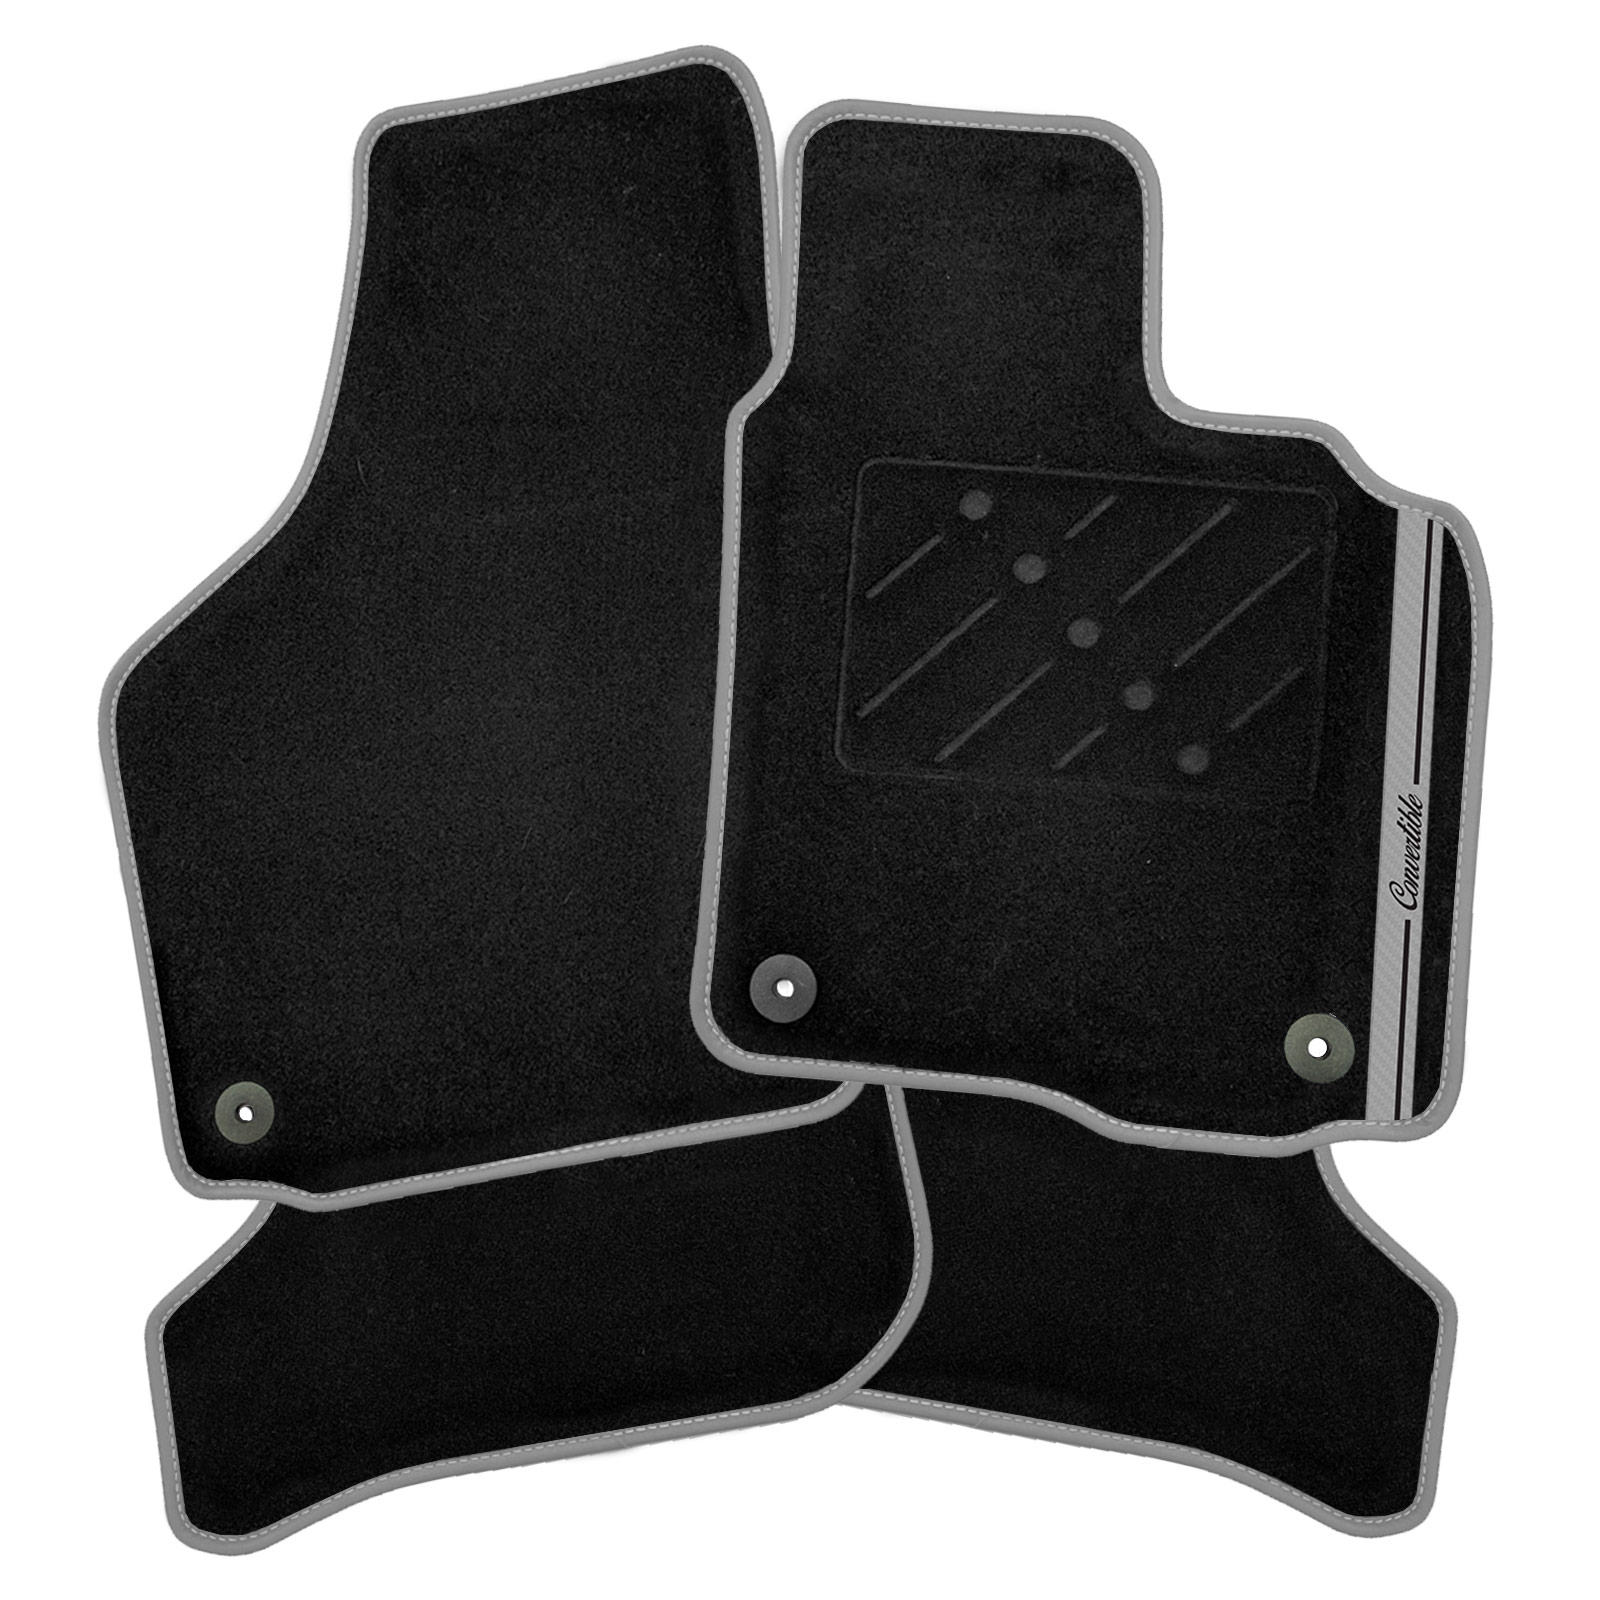 Bentley Continental Gt Convertible 1900 Gray For Sale: Bentley Continental GTC Convertible 05-11 Car Mats